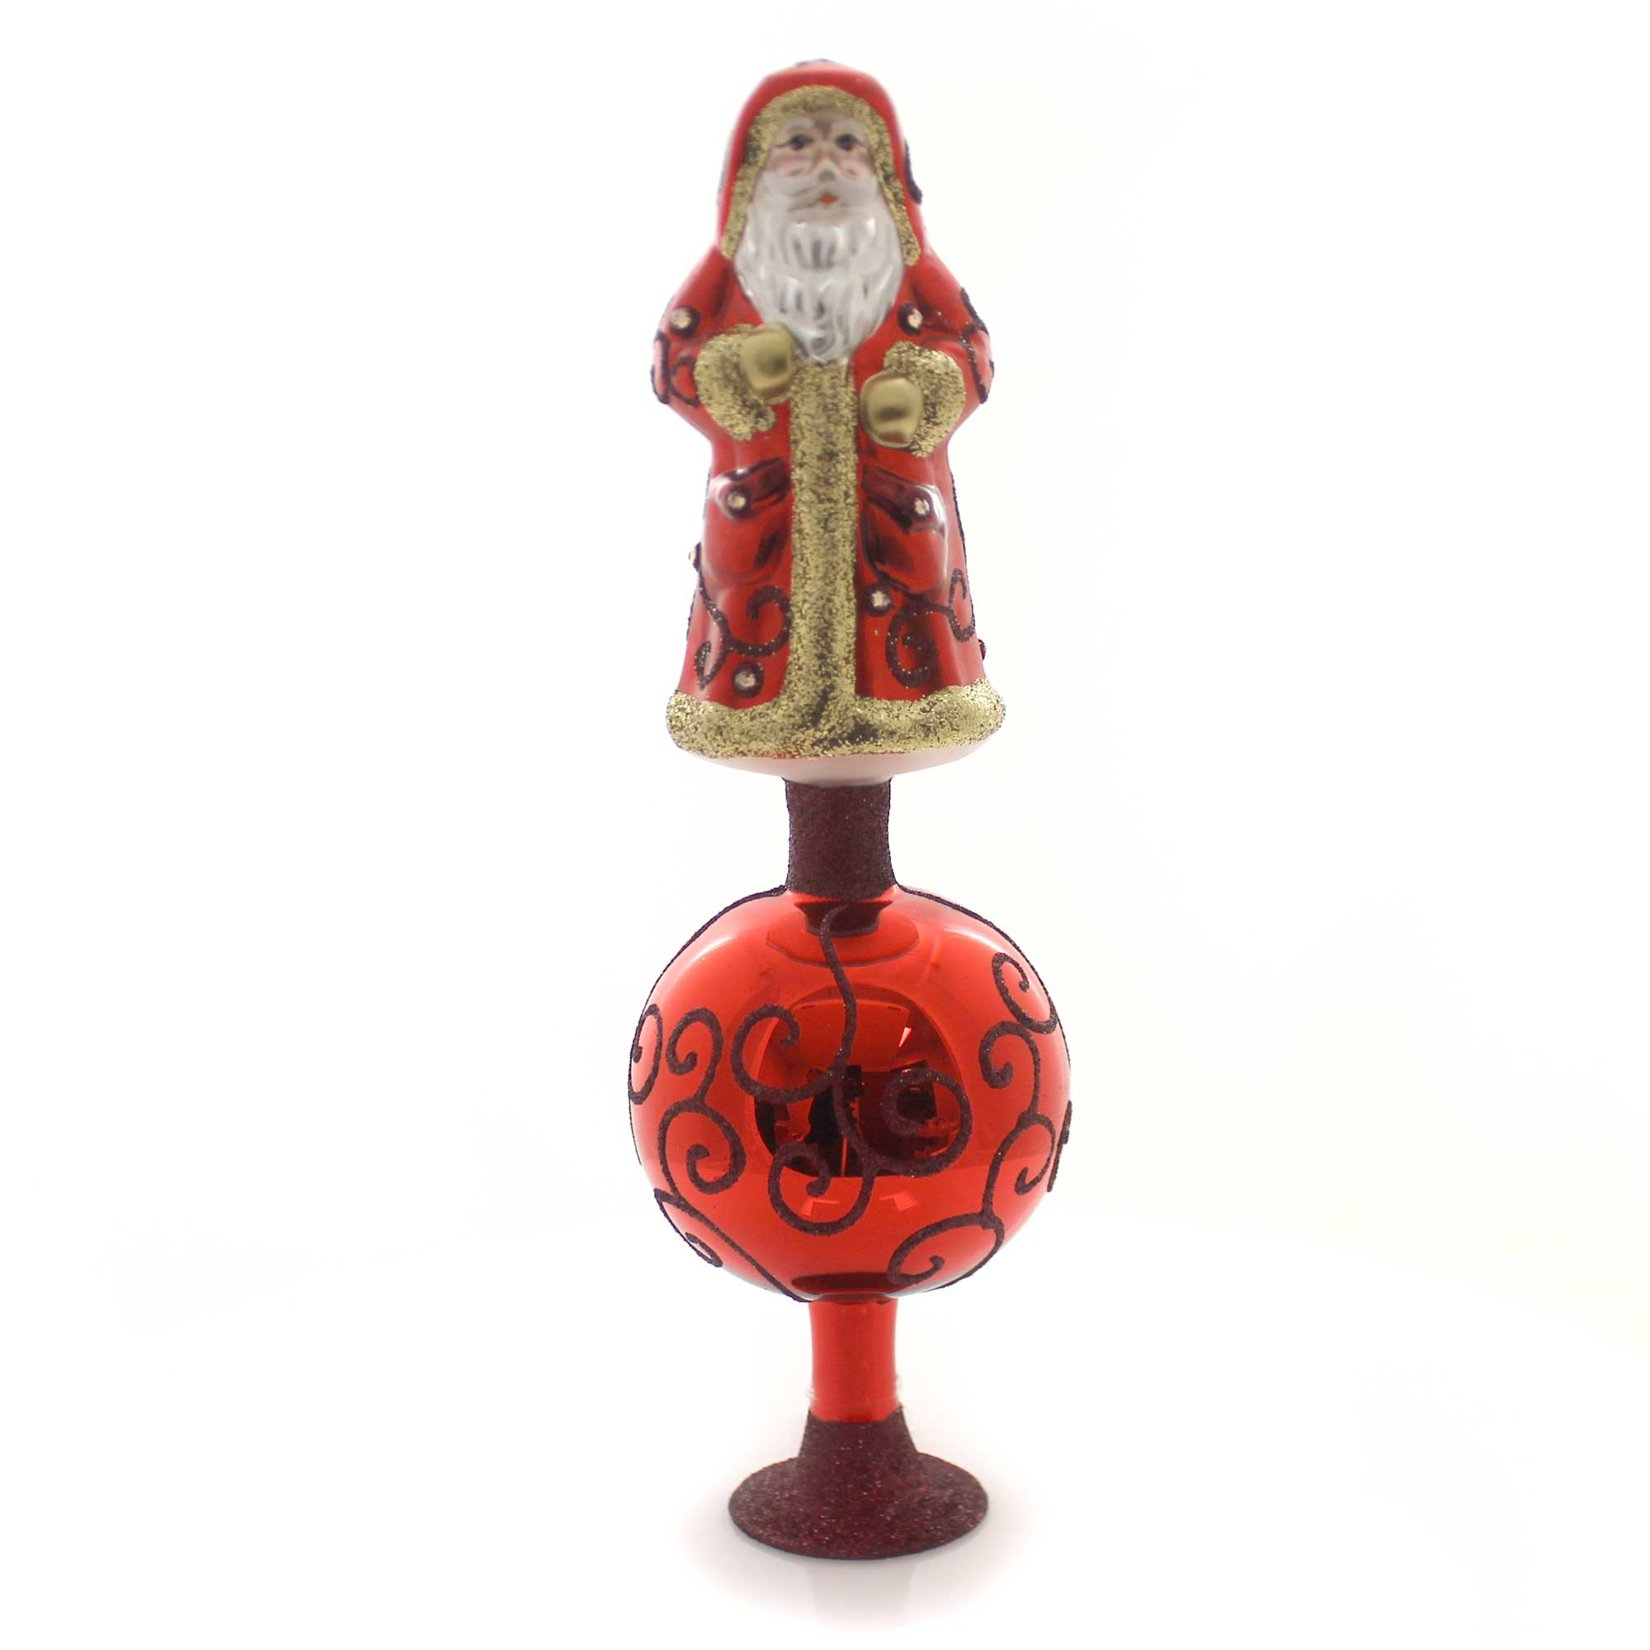 Inge-Glas Exquisite Nikolaus Tree Topper Glass Free Standing Finial 10015S017